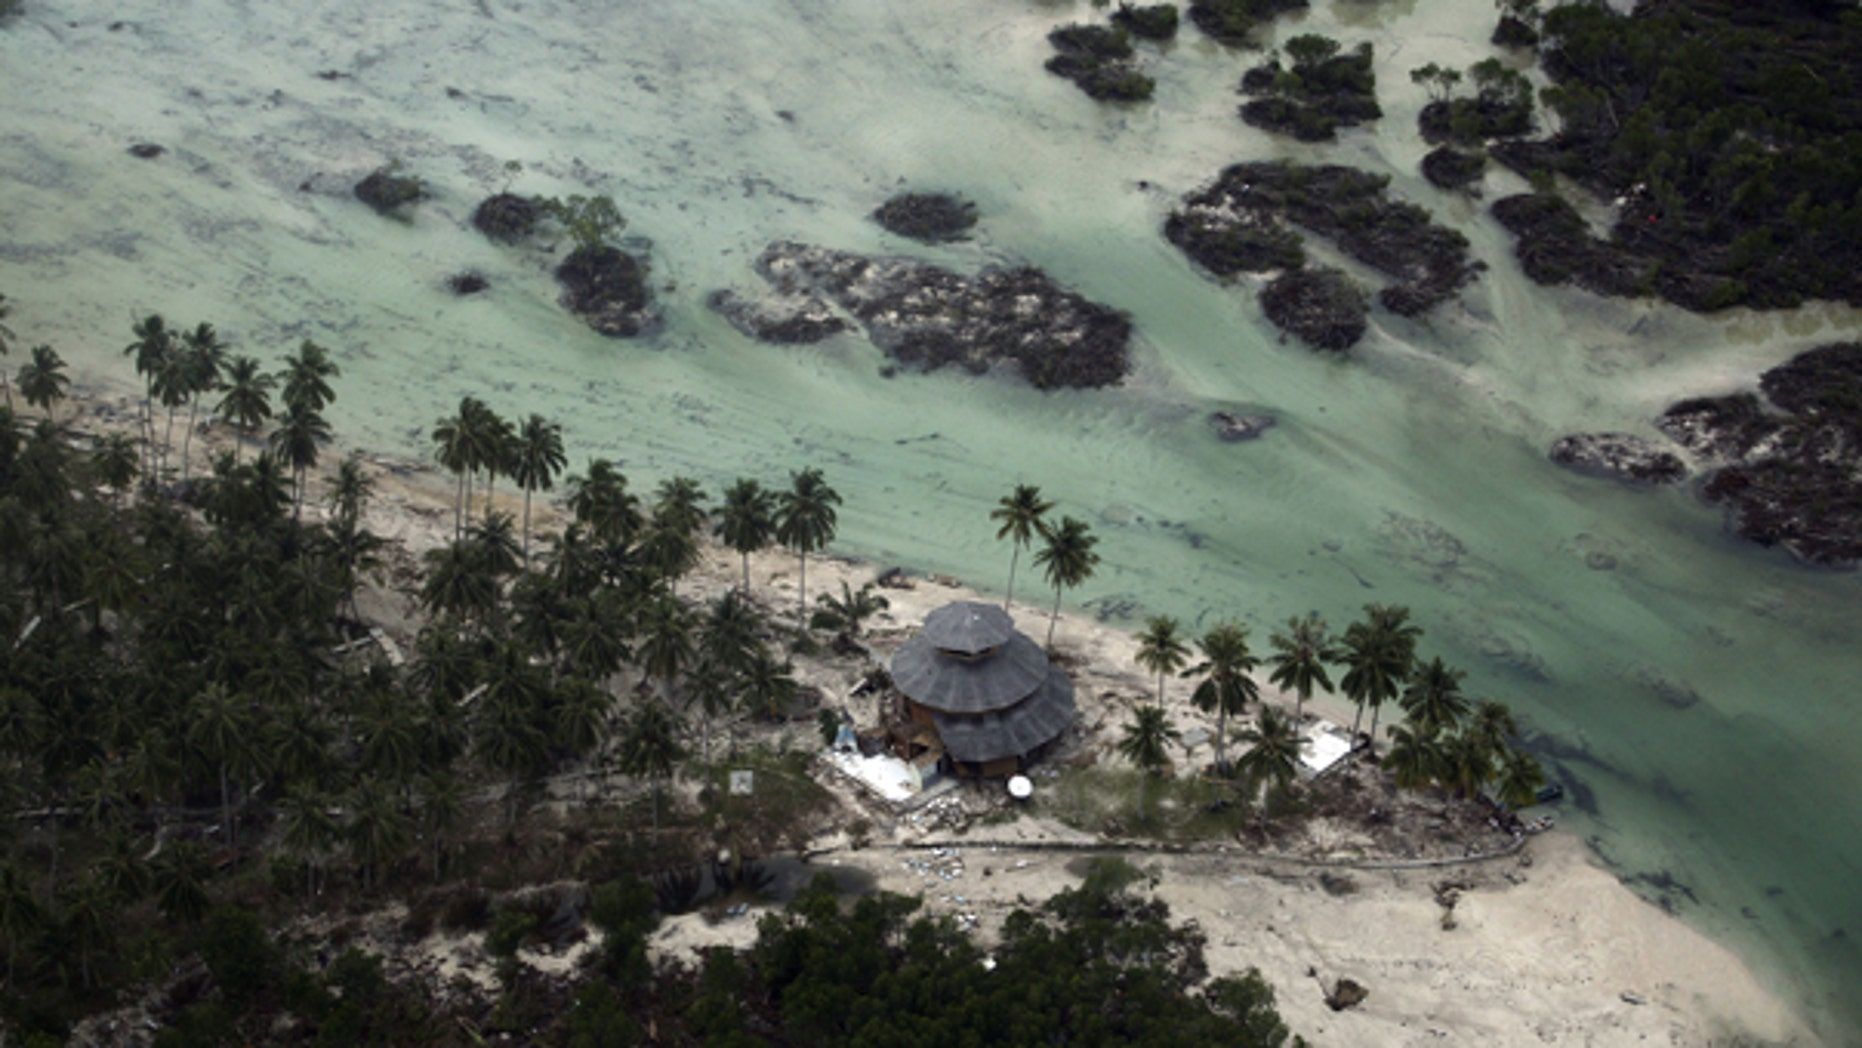 Oct. 27: This aerial photo shows a damaged building in a village flattened by Monday's earthquake triggered tsunami on Pagai island, West Sumatra, Indonesia.